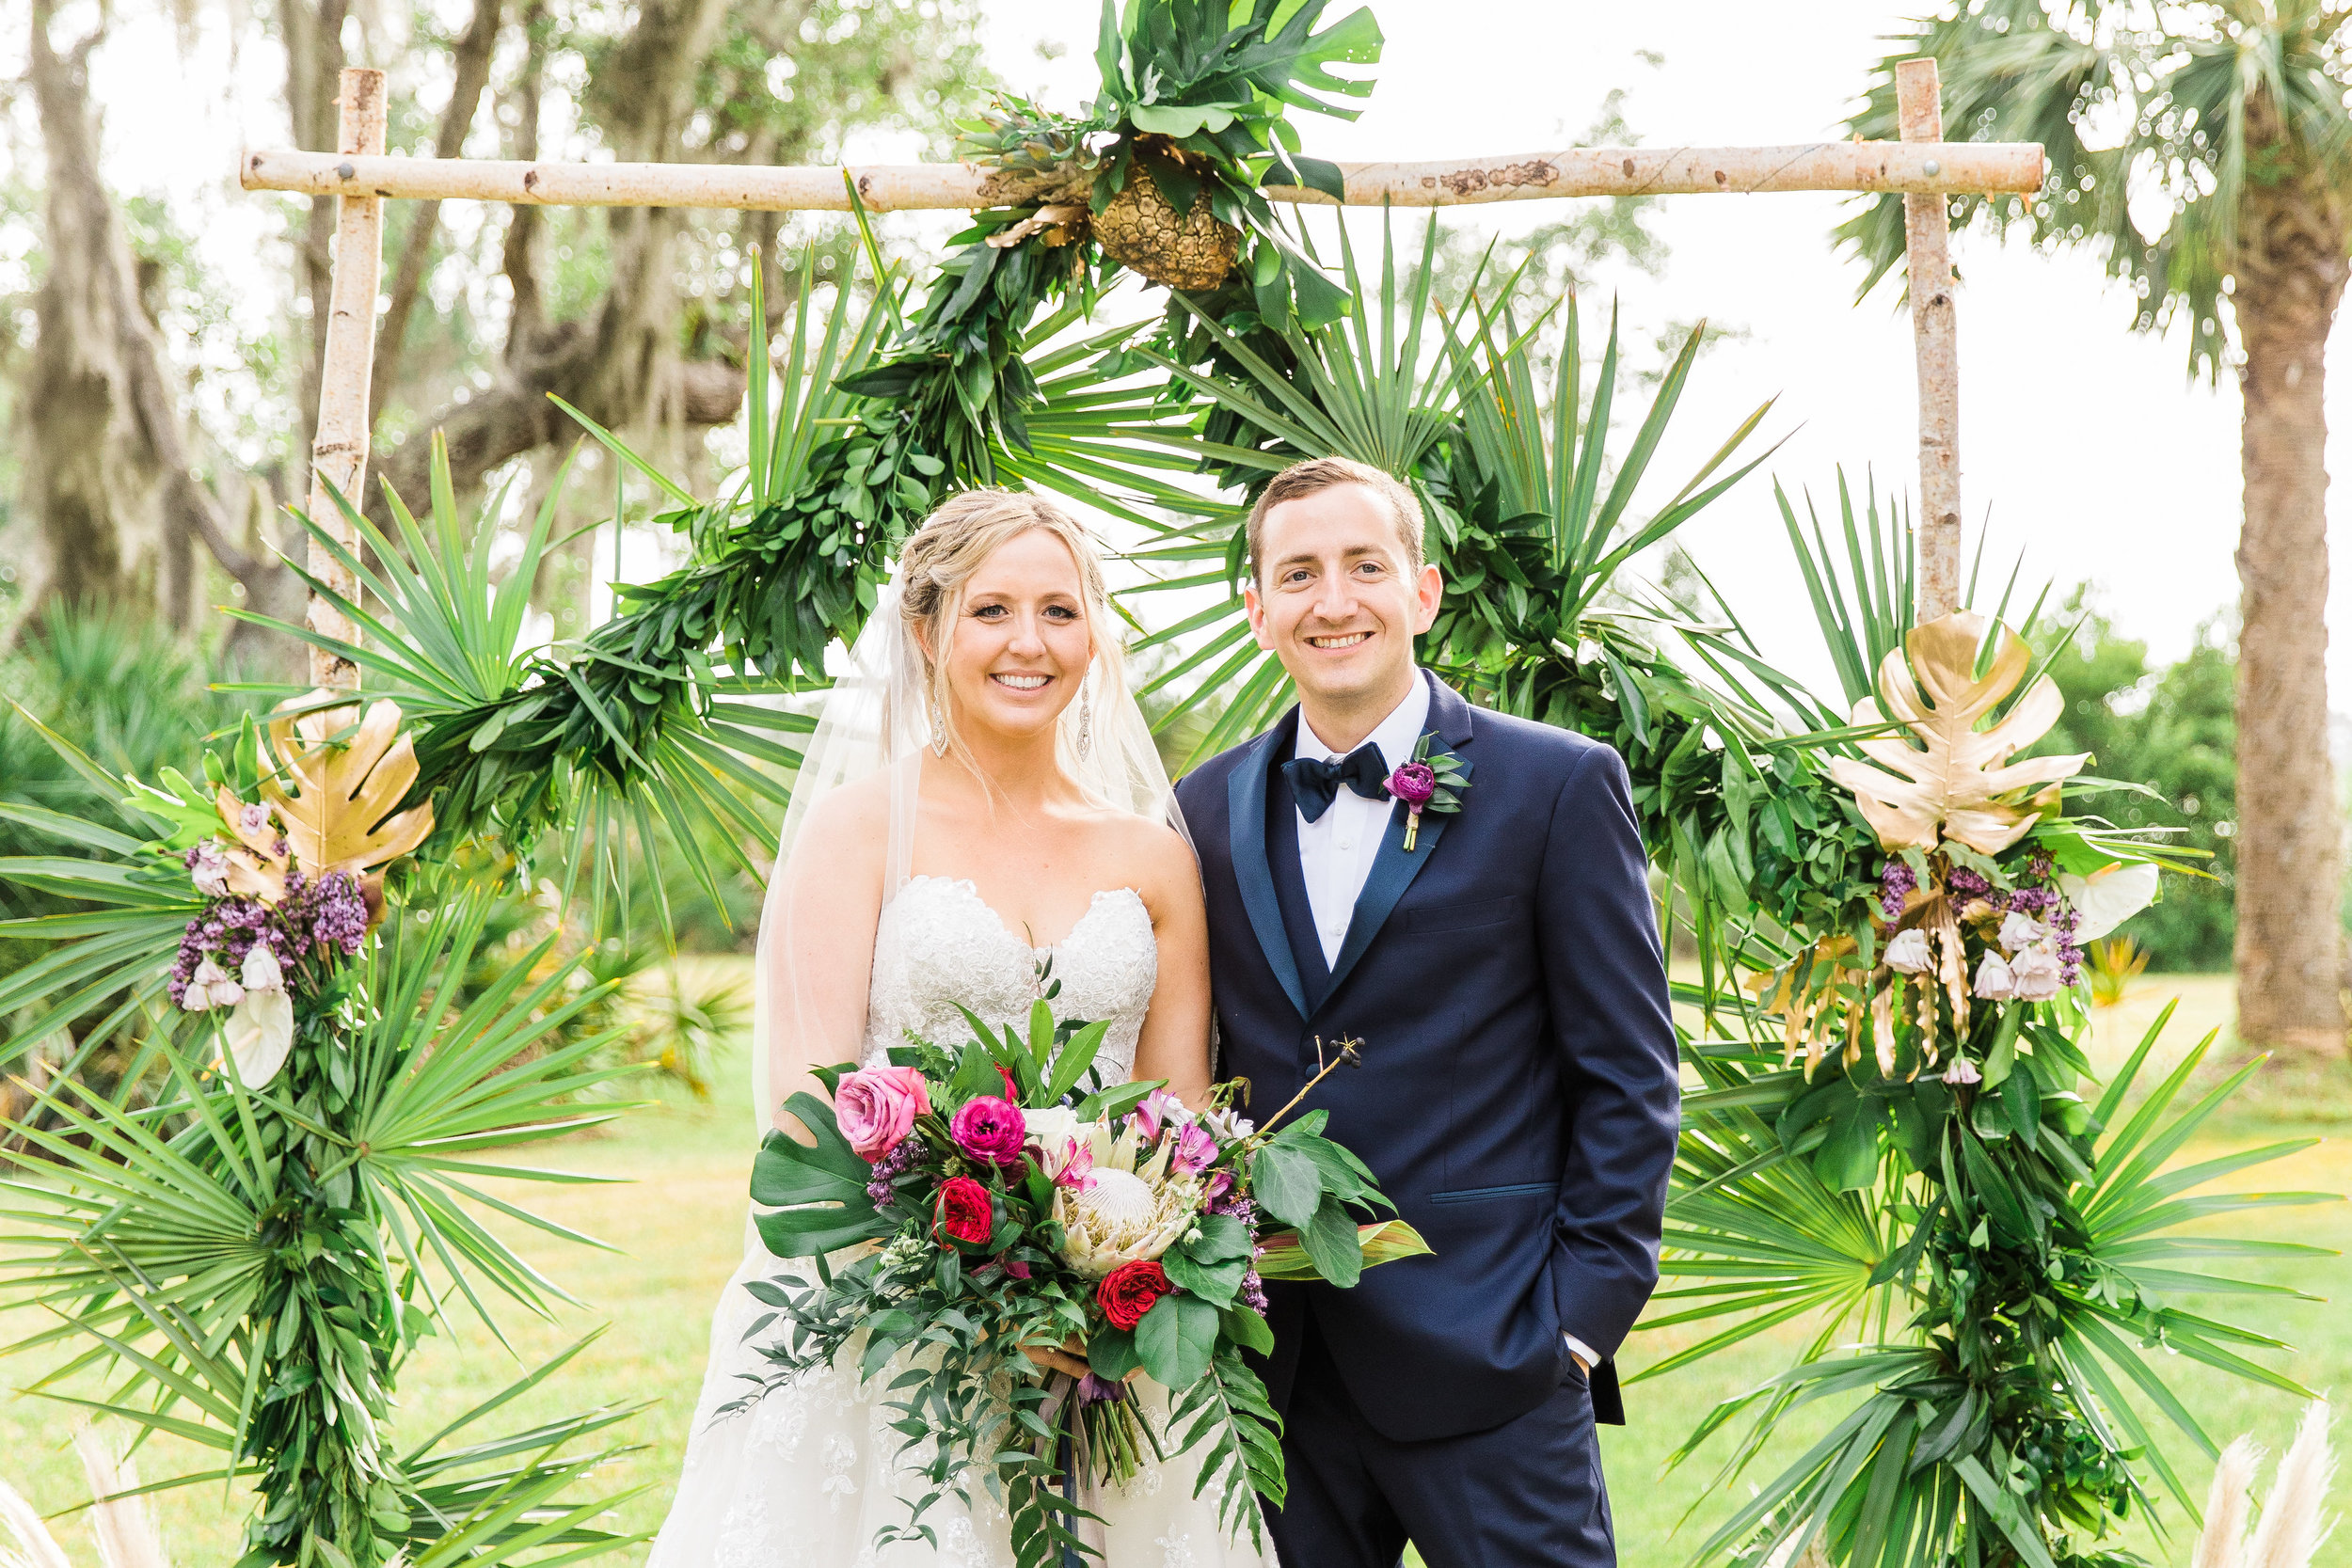 savannah-bridal-shop-i-and-b-couple-gretchen-and-alex-fun-and-unique-tropical-wedding-at-captains-bluff-st-simons-island-wedding-marianne-lucille-photography-30.jpg